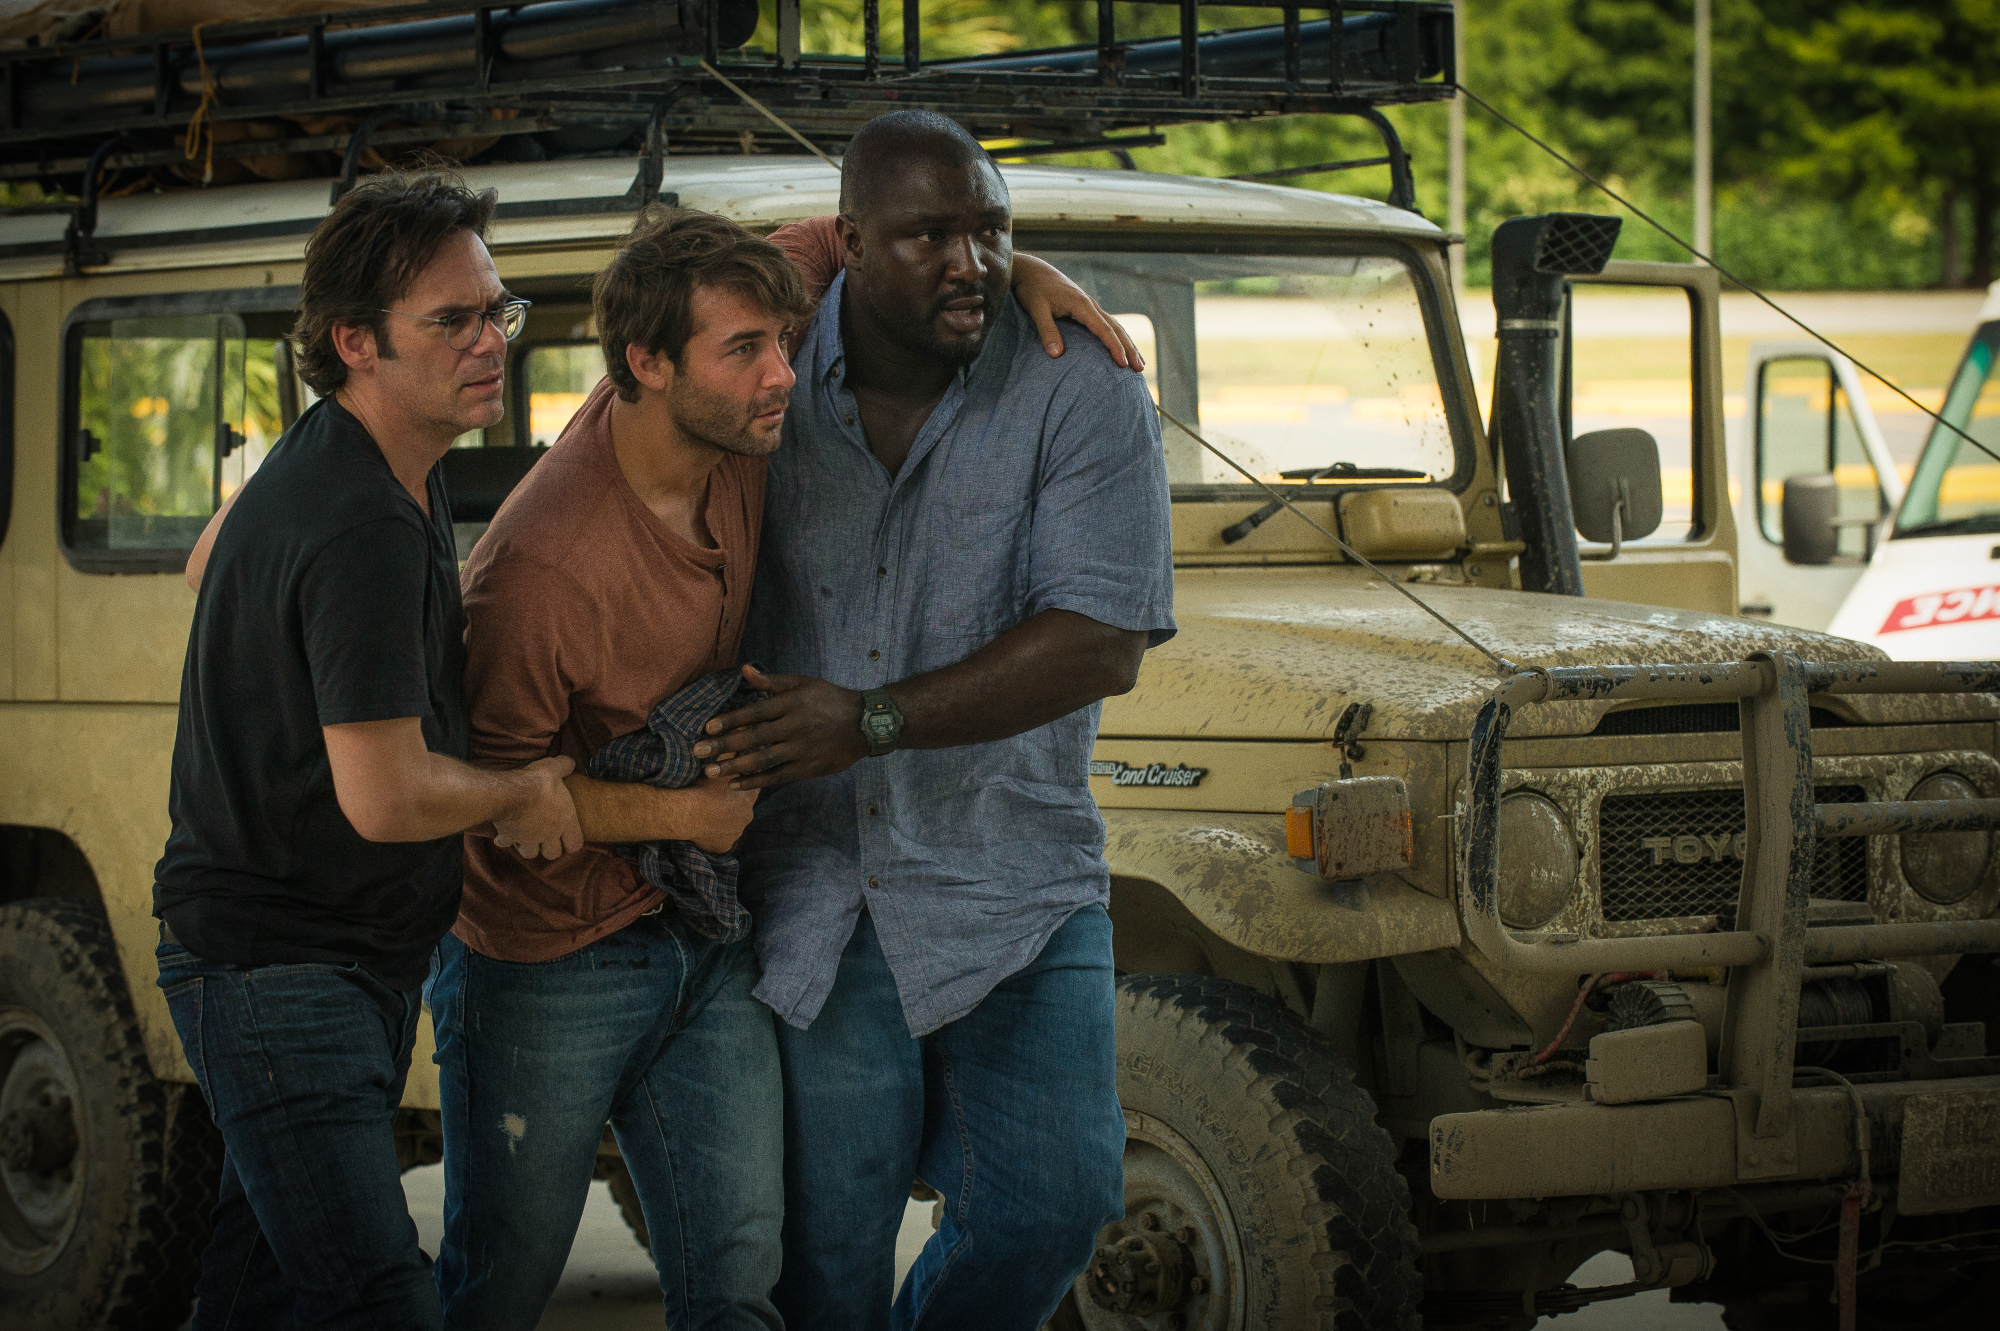 Billy Burke as Mitch Morgan, James Wolk as Jackson Oz, and Nonso Anozie as Abraham Kenyatta.